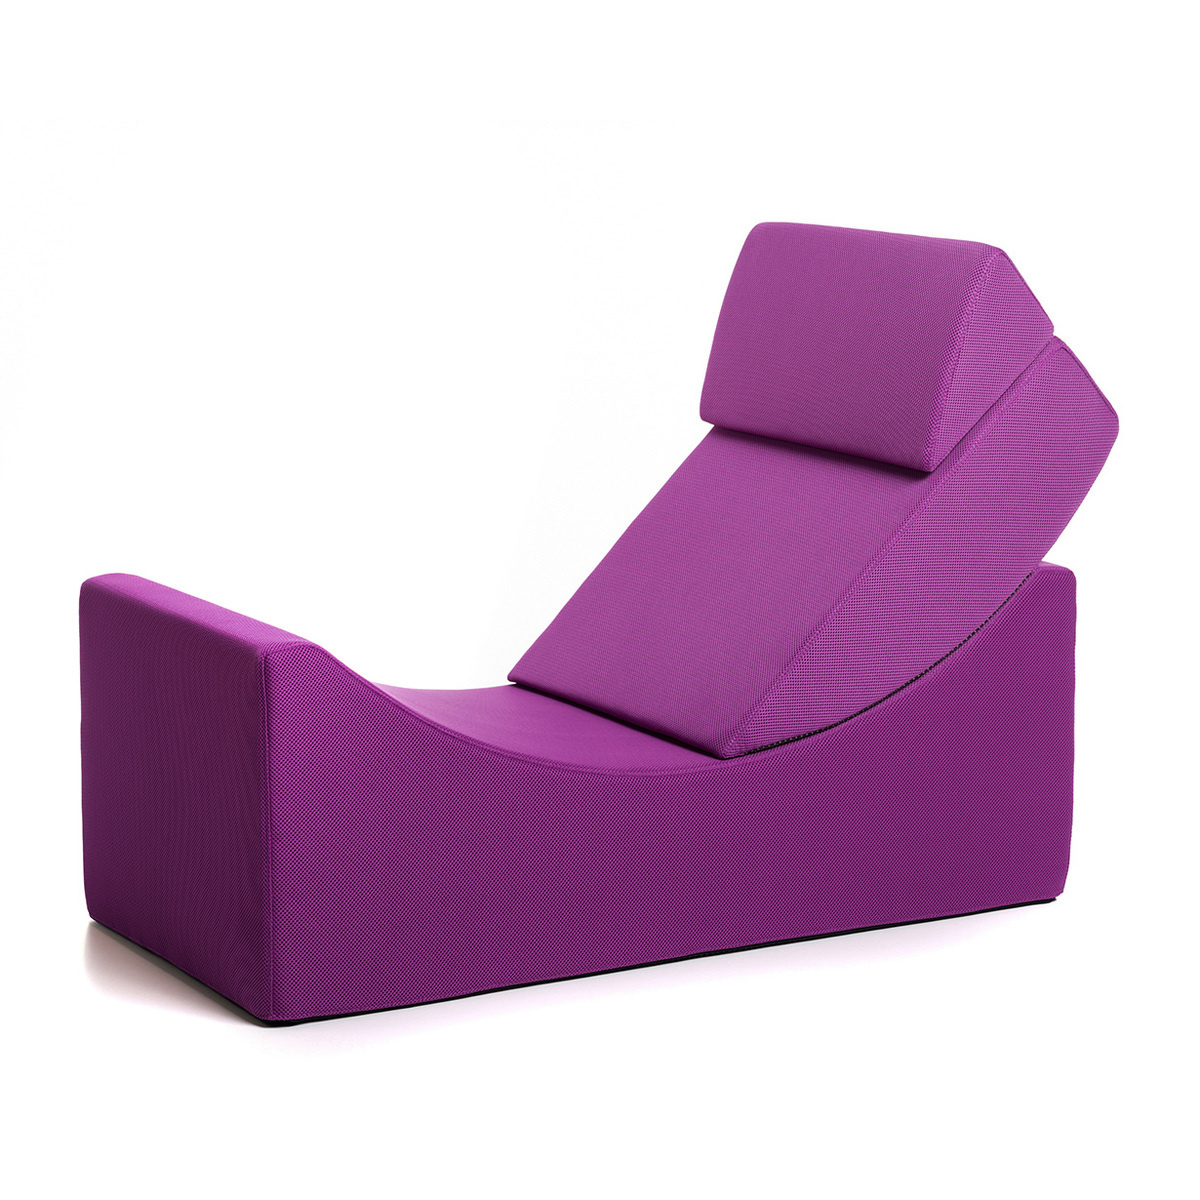 Chaise longue Moon by LINA | LOVEThESIGN